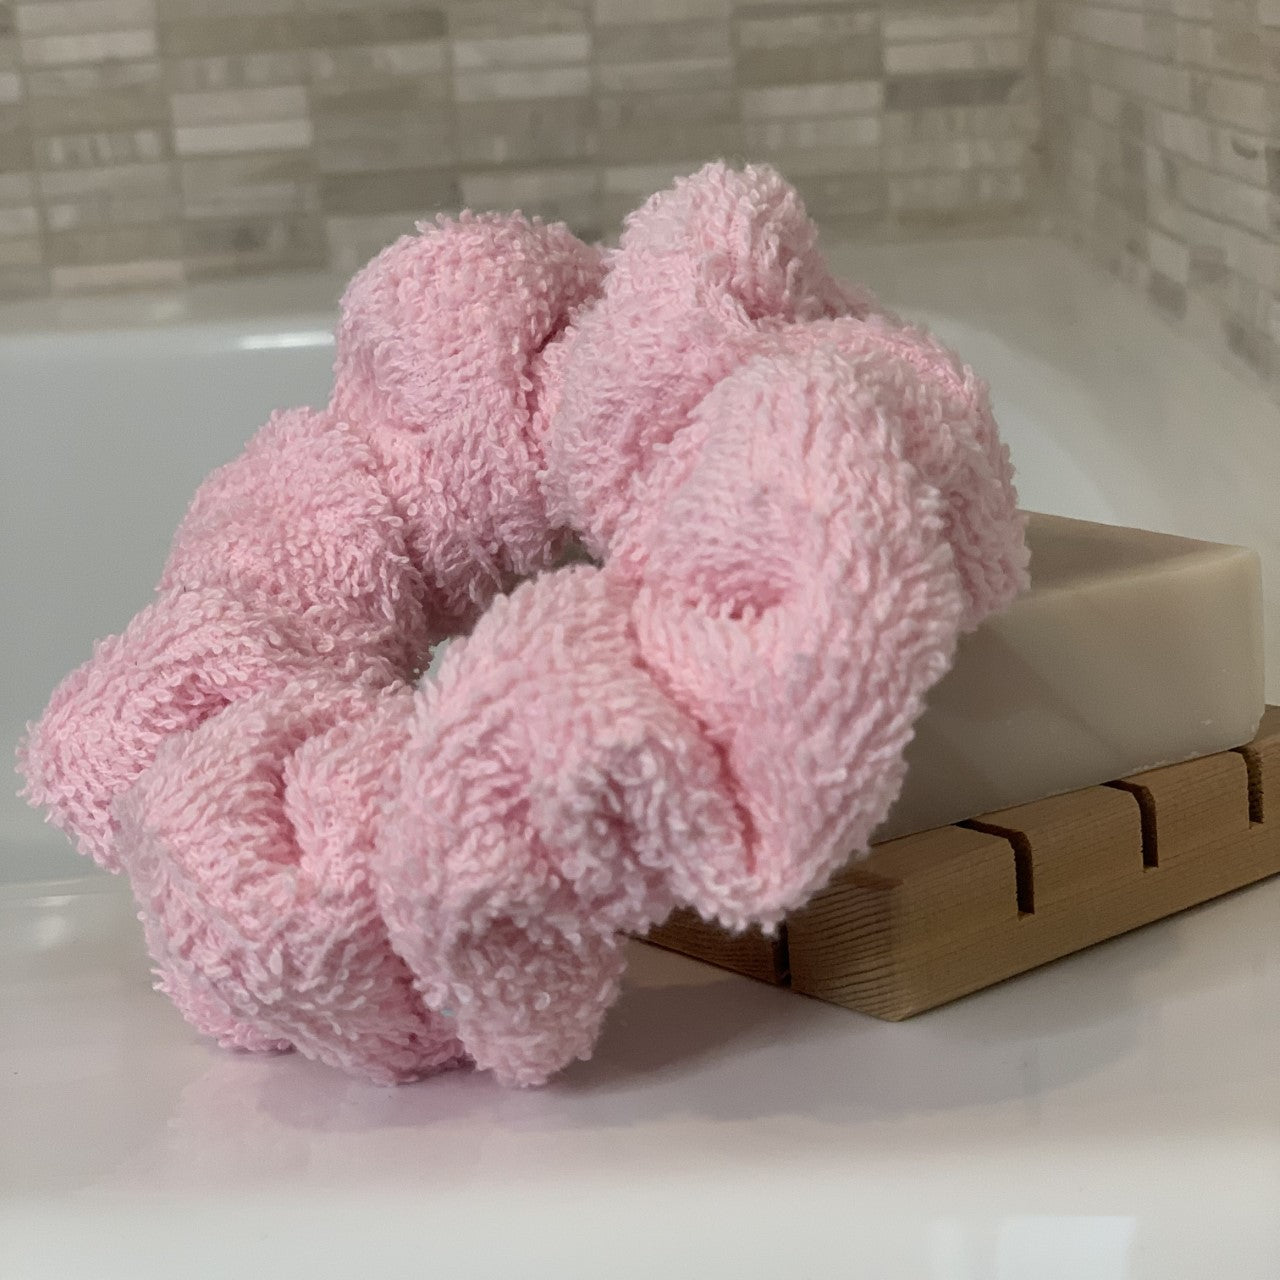 Make Me Blush - Terry Cloth Towel